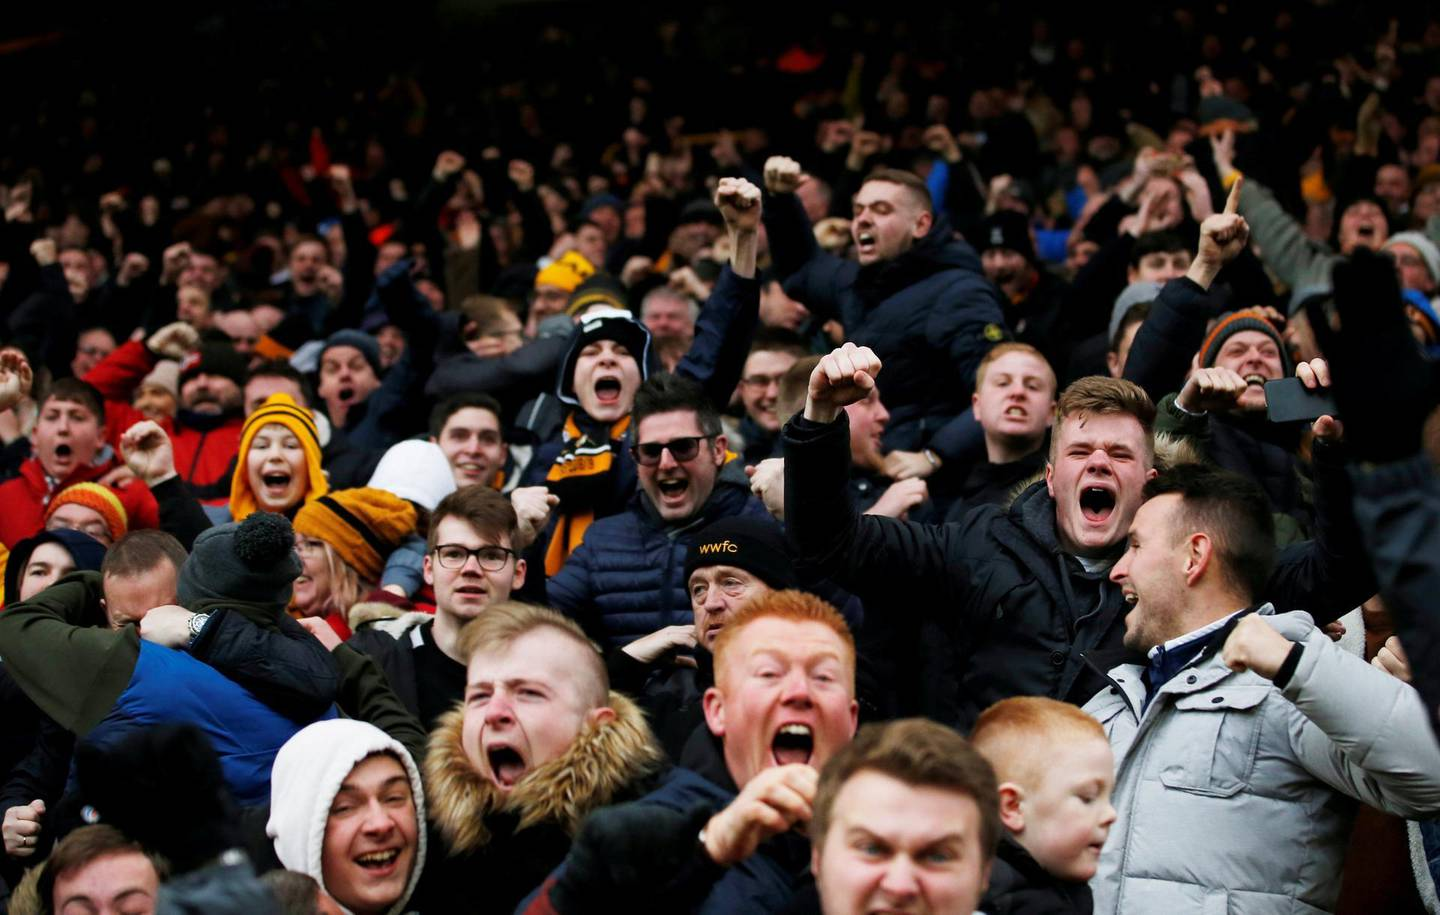 """Soccer Football - Premier League - Wolverhampton Wanderers v Leicester City - Molineux Stadium, Wolverhampton, Britain - January 19, 2019  Wolverhampton Wanderers fans celebrate after Diogo Jota (not pictured) scored their fourth goal  Action Images via Reuters/Craig Brough  EDITORIAL USE ONLY. No use with unauthorized audio, video, data, fixture lists, club/league logos or """"live"""" services. Online in-match use limited to 75 images, no video emulation. No use in betting, games or single club/league/player publications.  Please contact your account representative for further details.     TPX IMAGES OF THE DAY"""